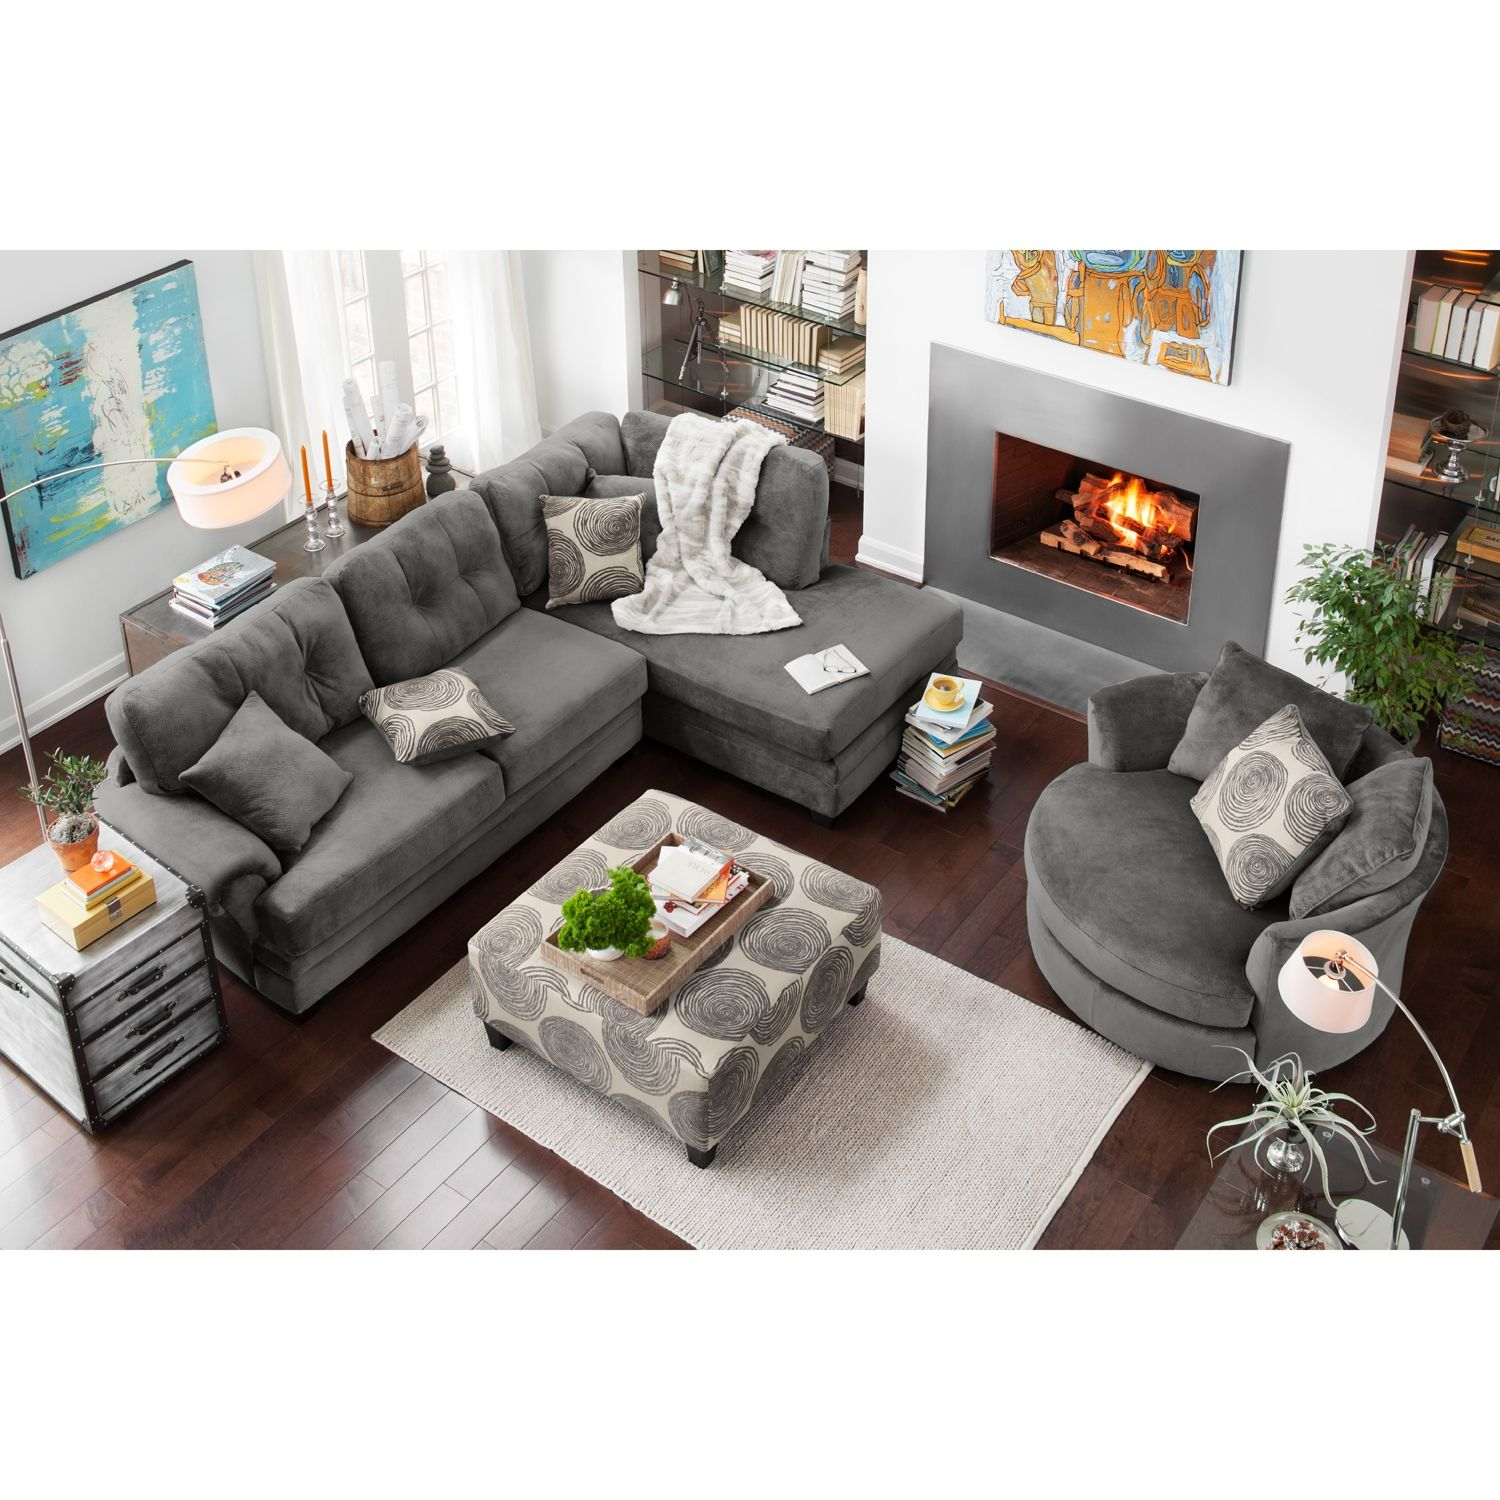 Home City Furniture Set Decoration Awesome Cordelle 2Piece Rightfacing Chaise Sectional  Gray  Value City . Inspiration